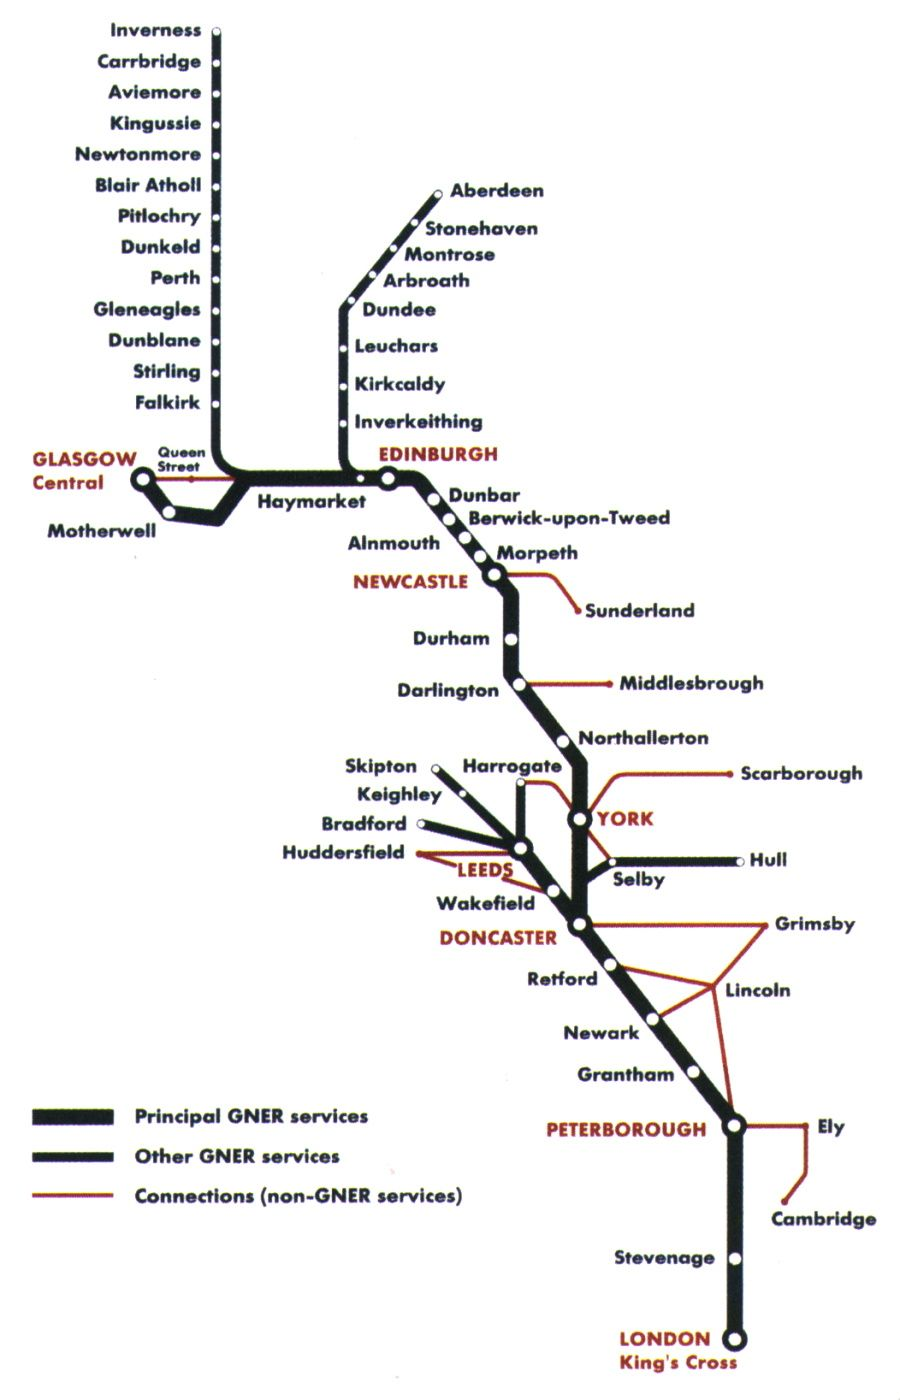 Image showing the GNER route map circa 2005.